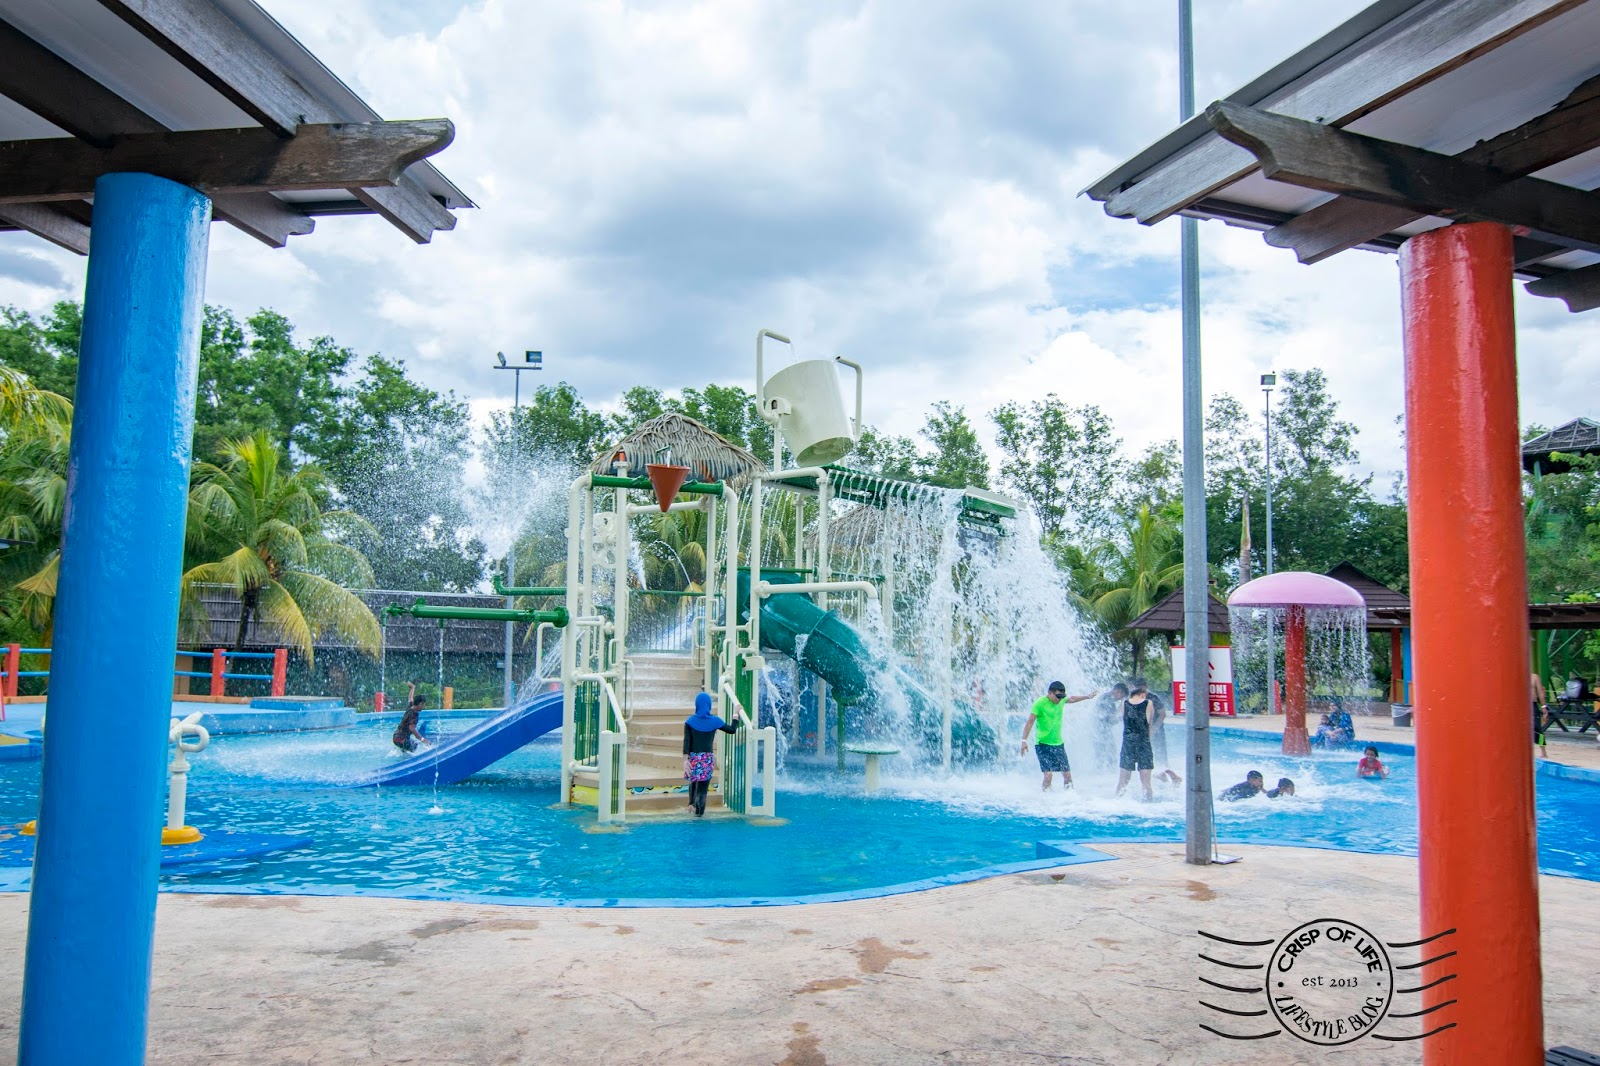 The Carnivall Waterpark Sungai Petani